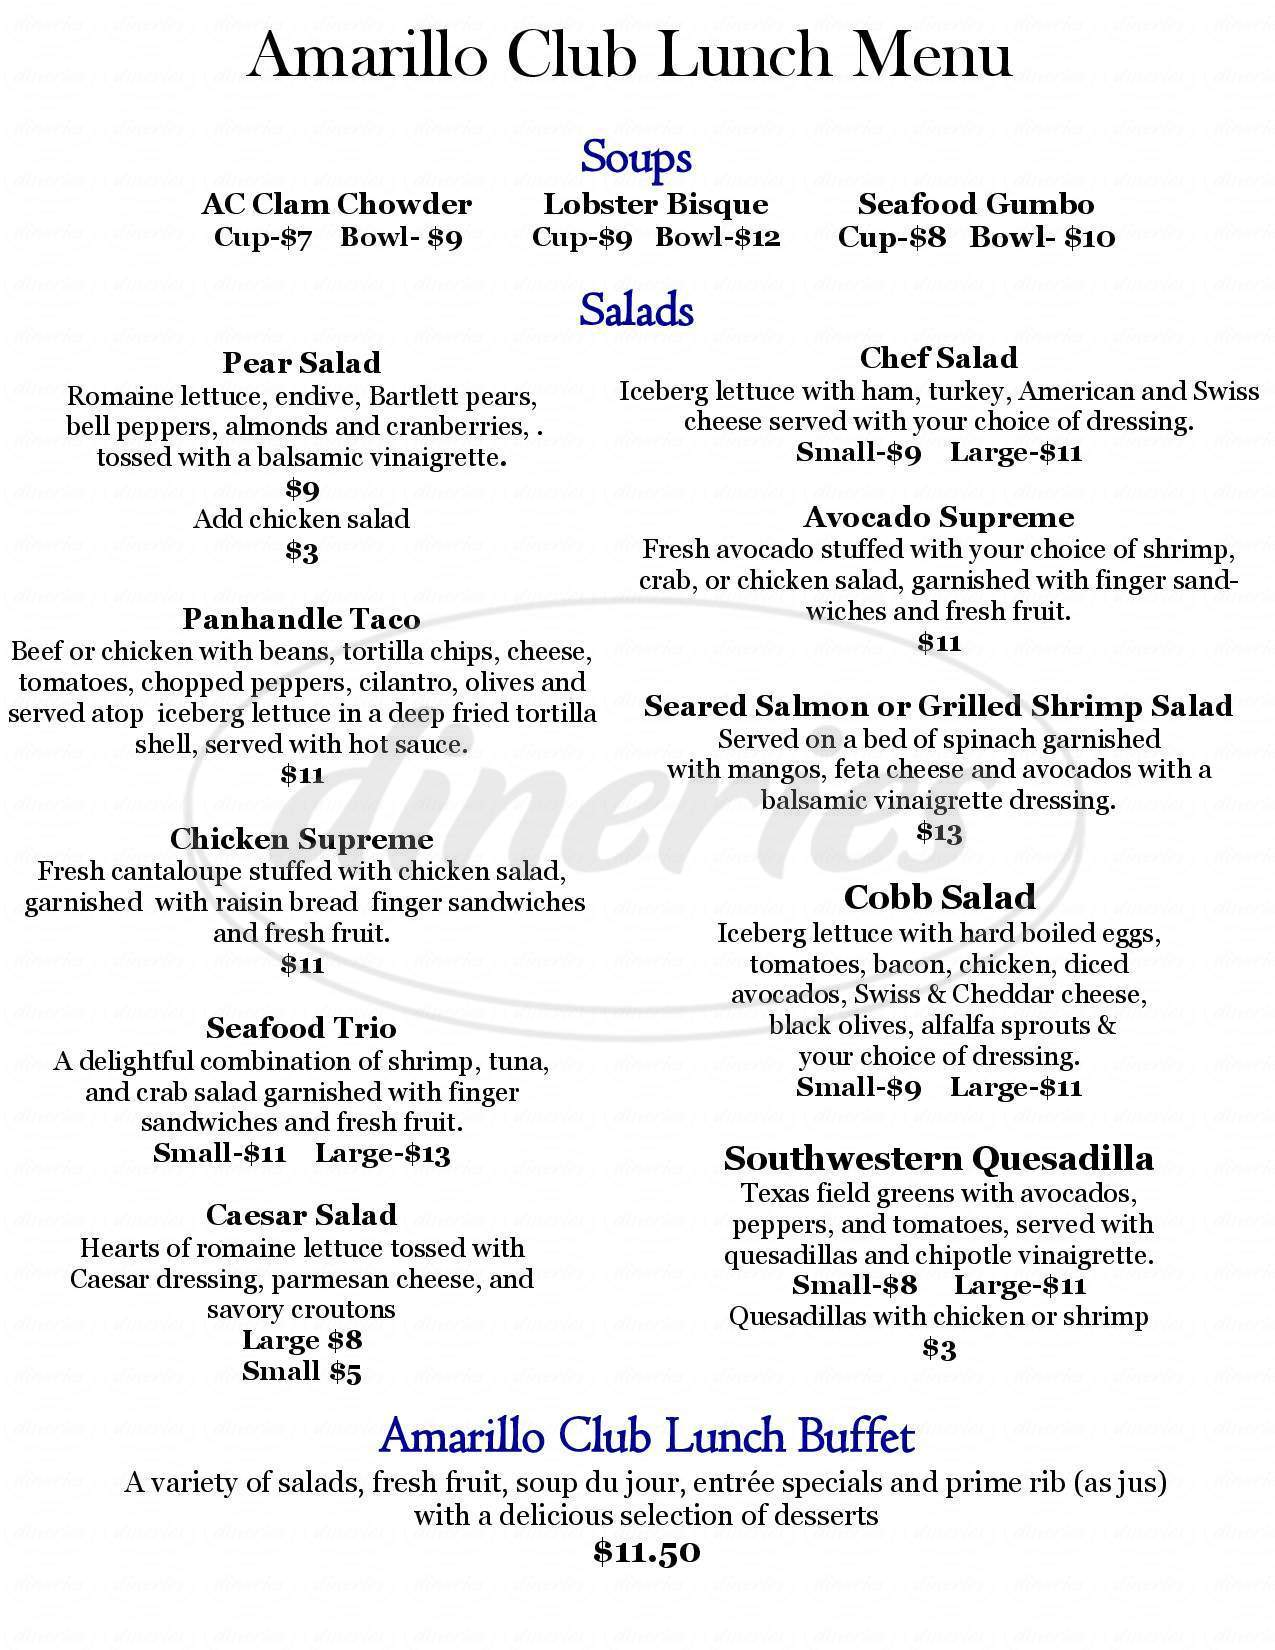 menu for Amarillo Club